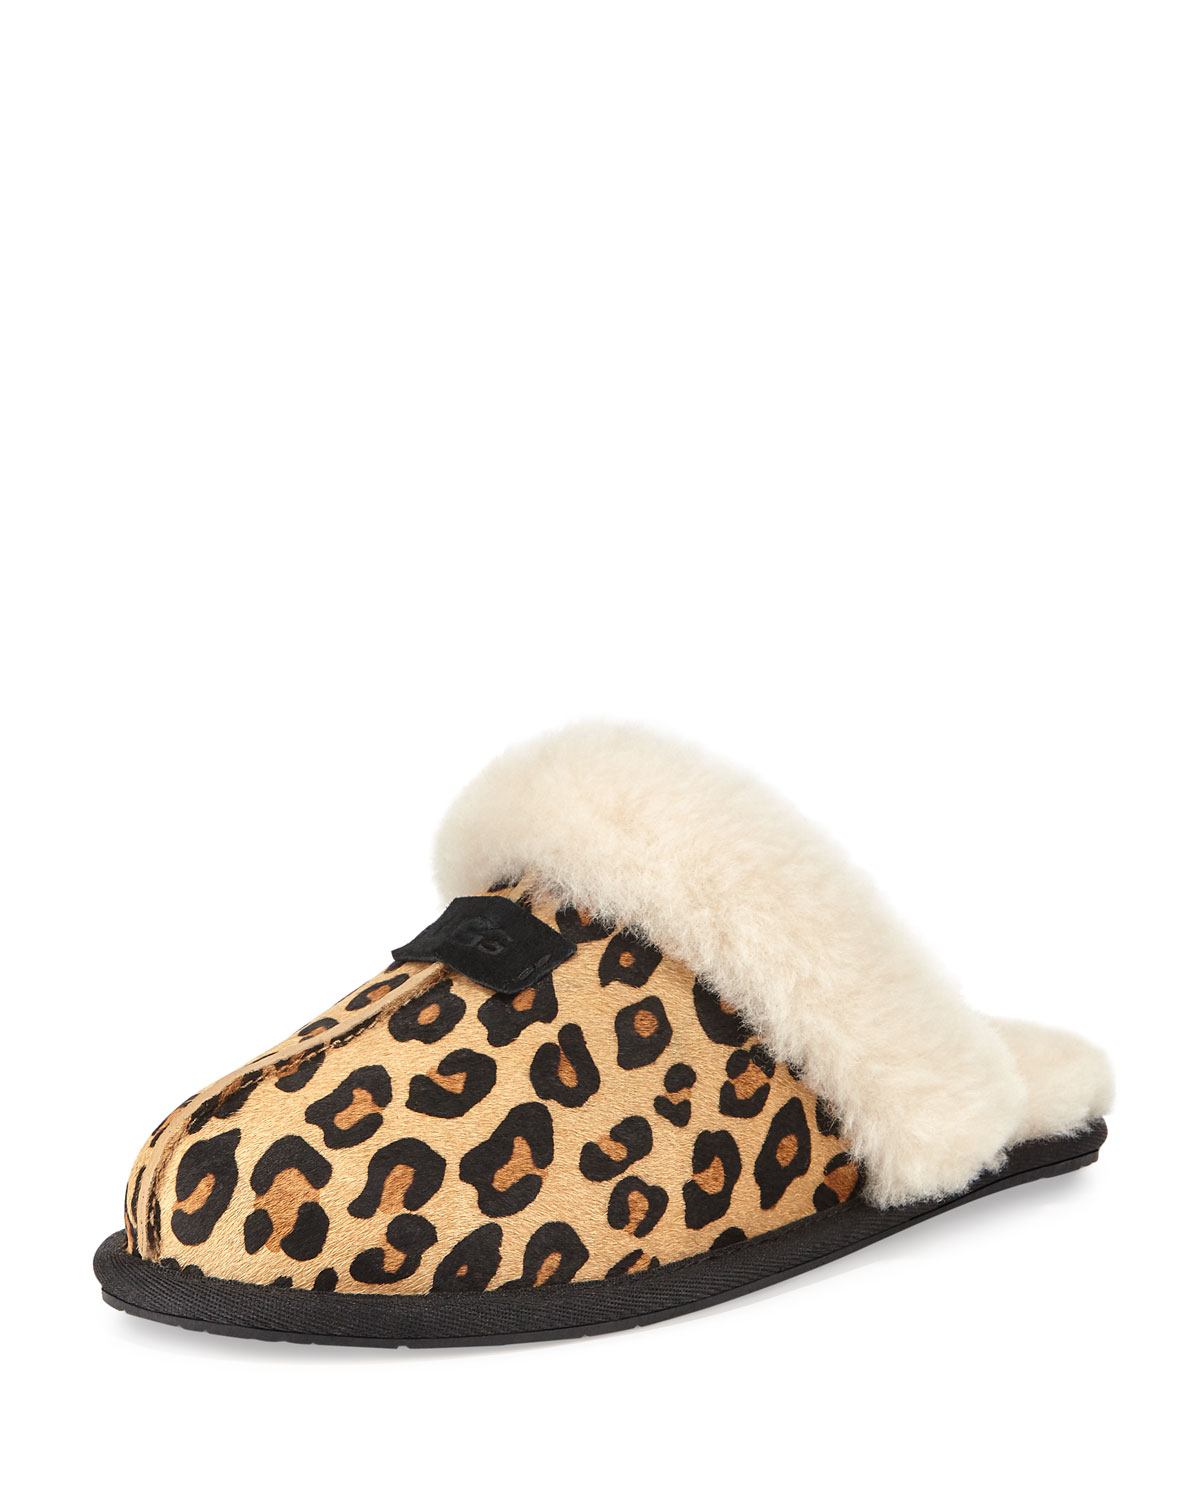 Uggscuffette Ii Calf Hair Slipper Chestnut Leopard